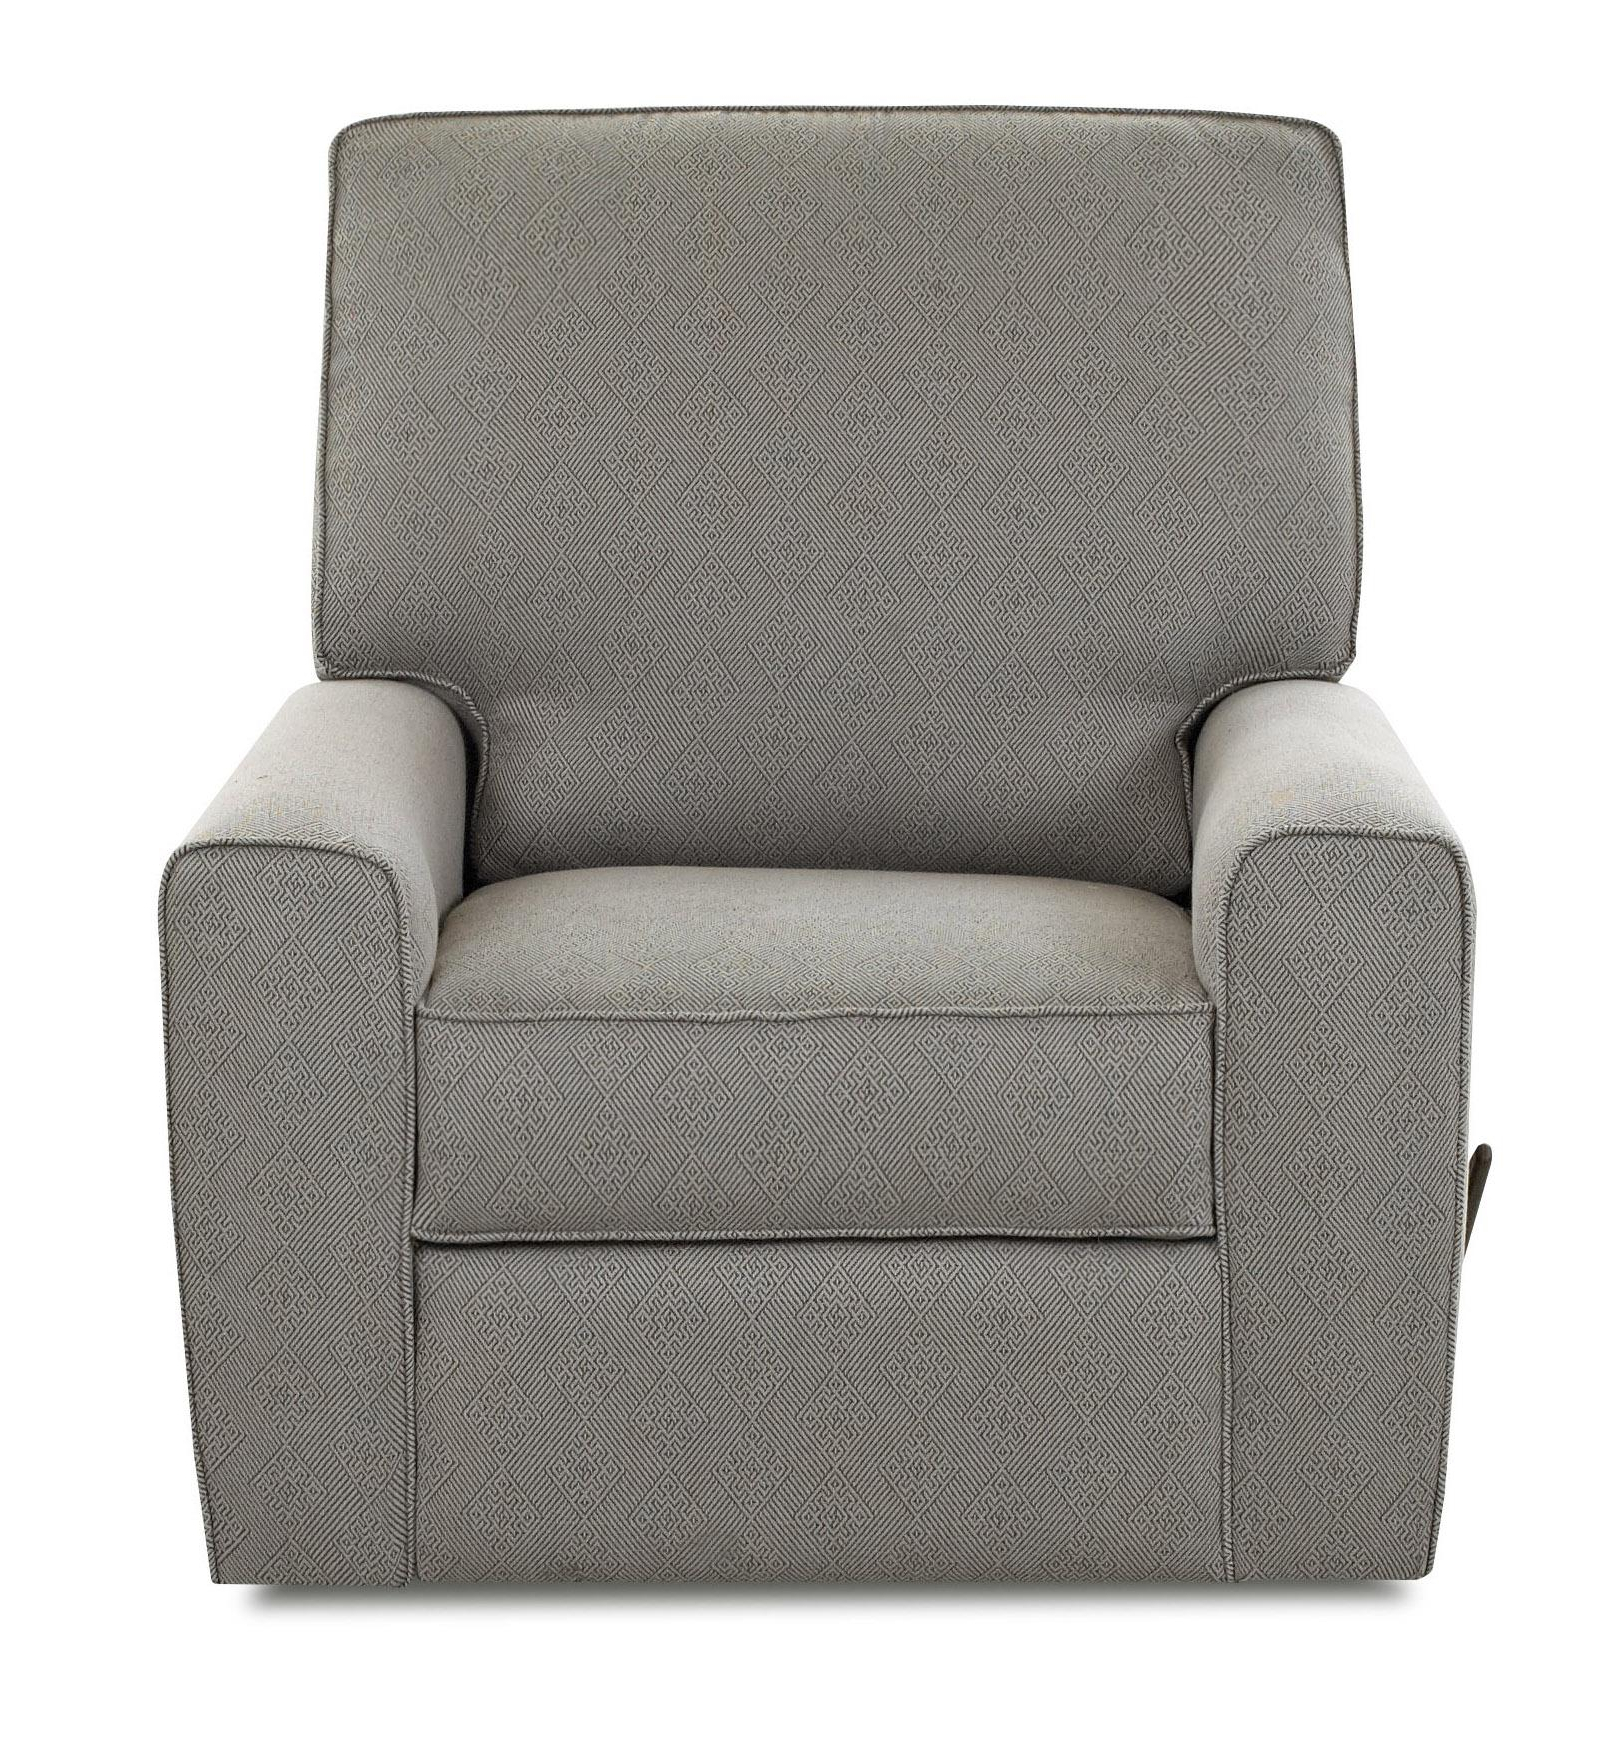 Most Recent Klaussner Hannah Transitional Swivel Gliding Reclining Chair With Throughout Bailey Roll Arm Skirted Swivel Gliders (View 16 of 20)